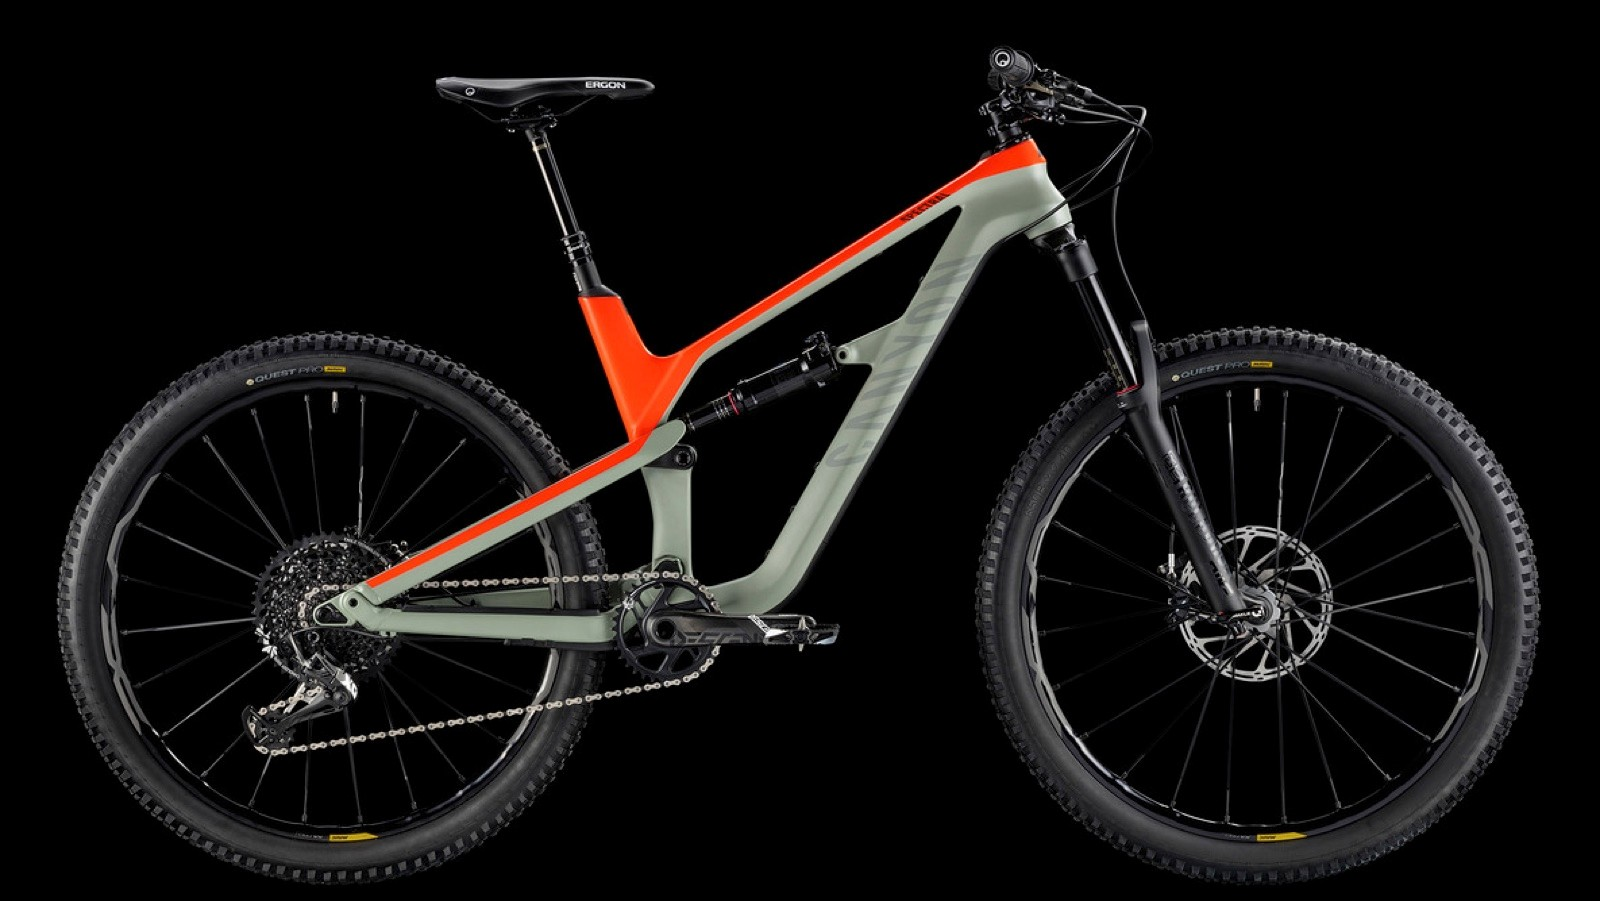 Canyon has issued a recall on select 2018 Spectral models